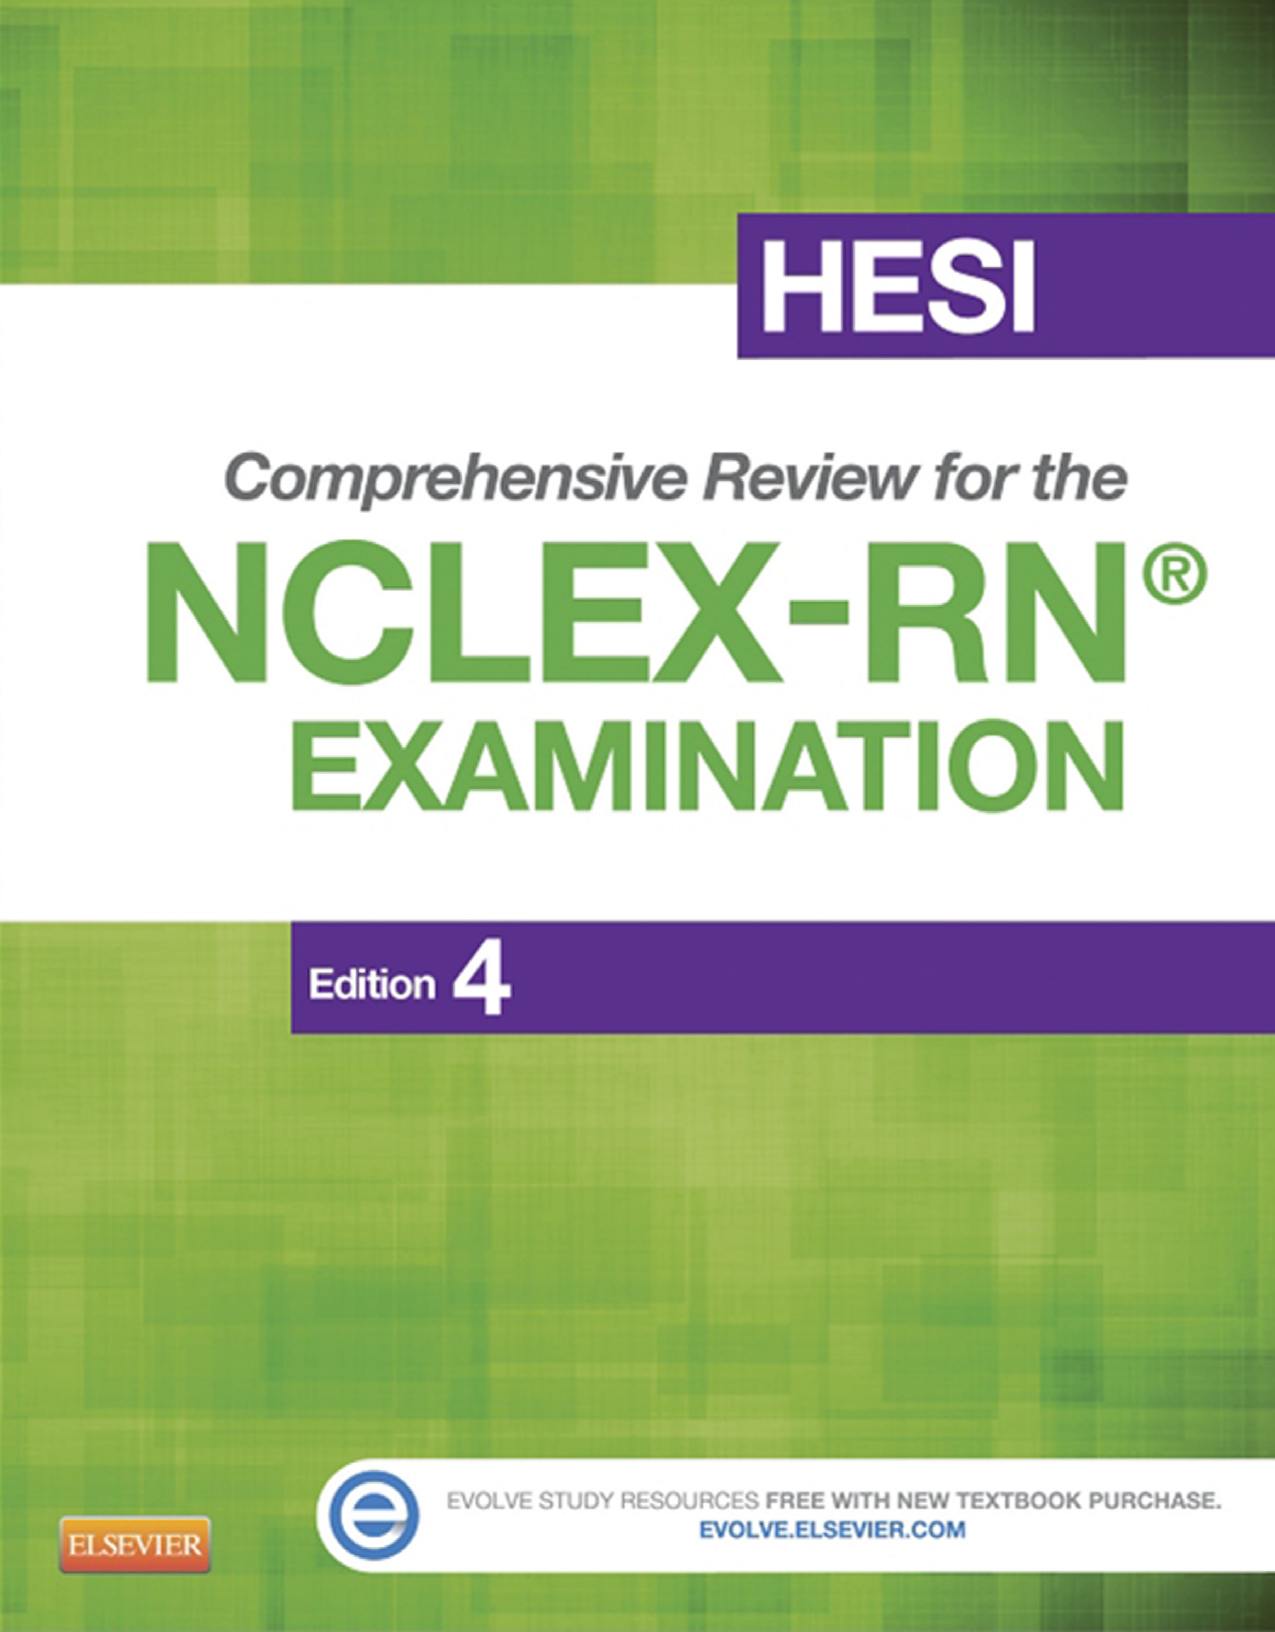 HESI Comprehensive Review for the NCLEX